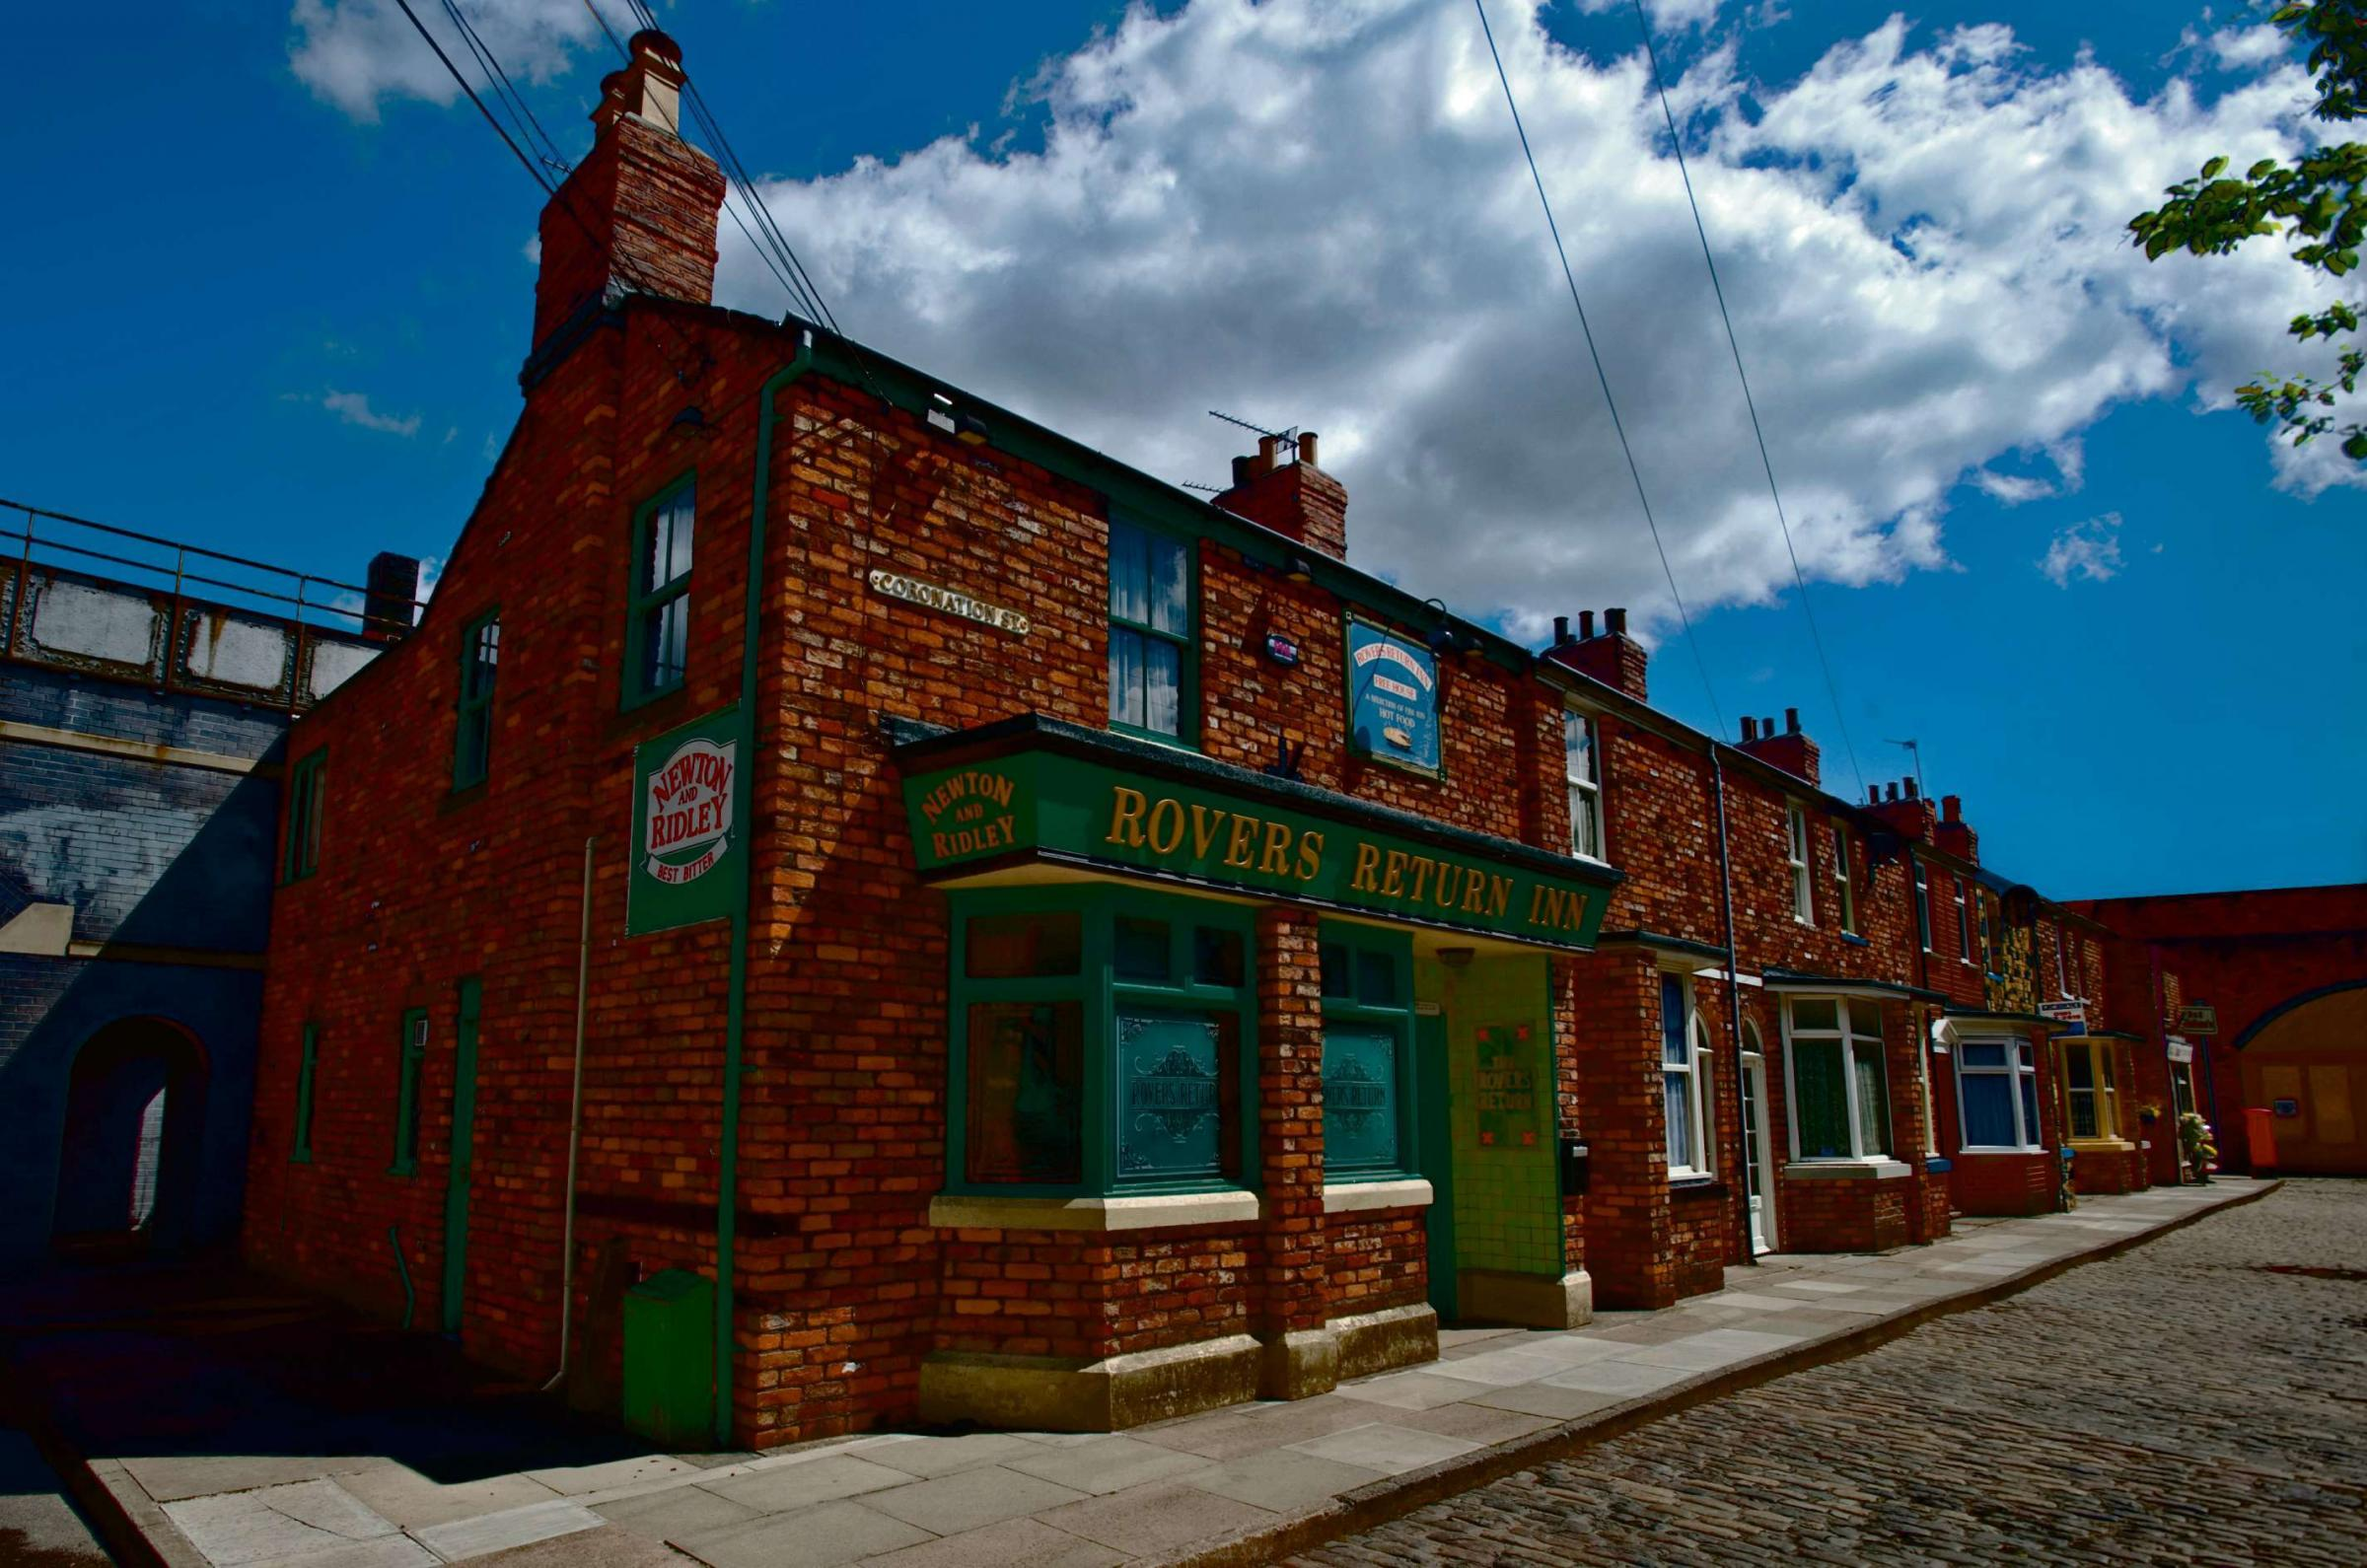 Last chance to see Coronation Street's historic home